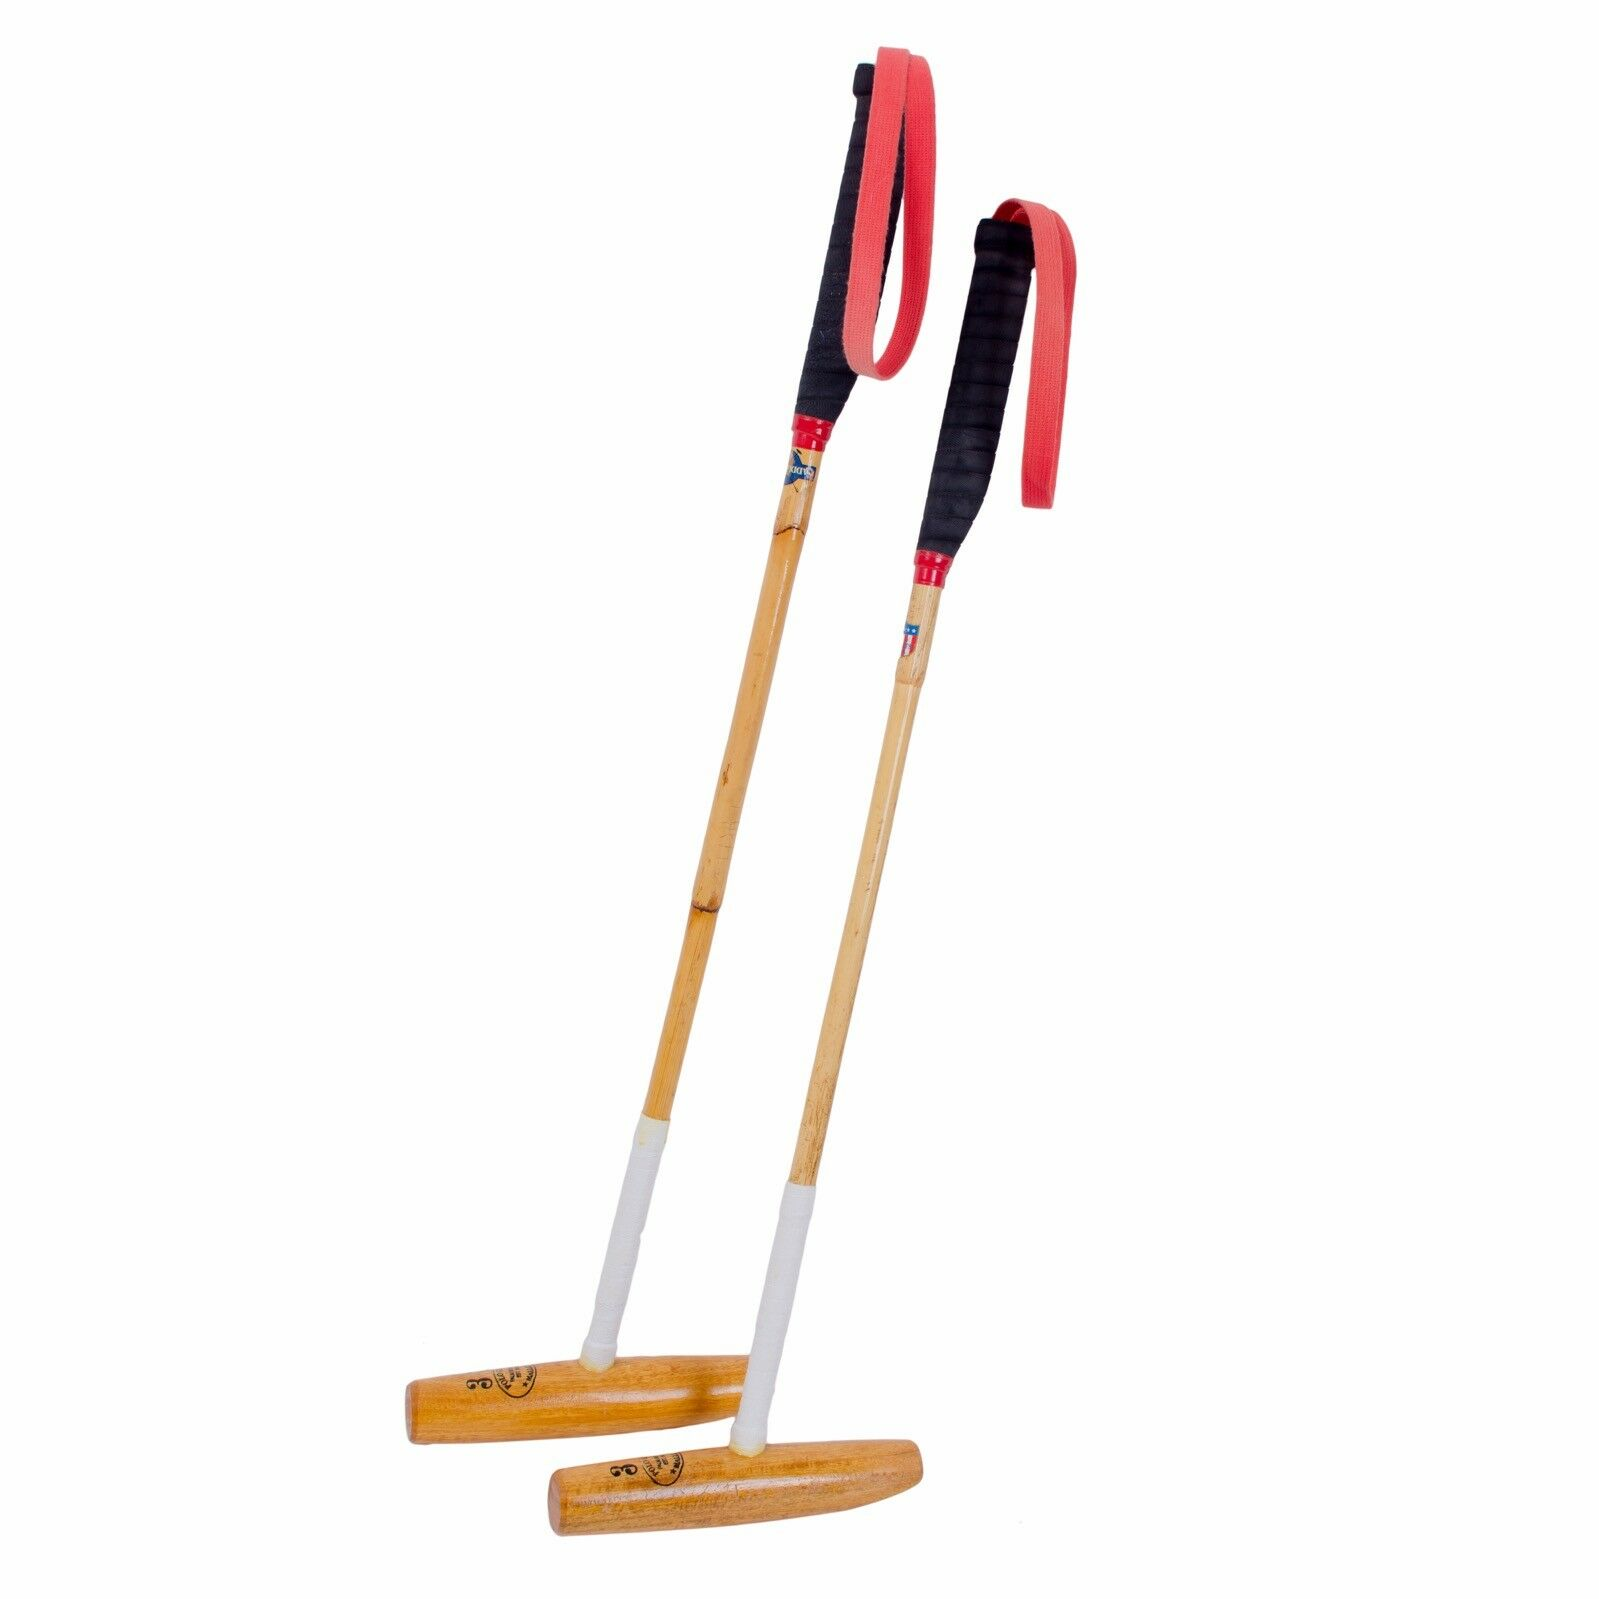 Polo Gear Mallets 33 and 31